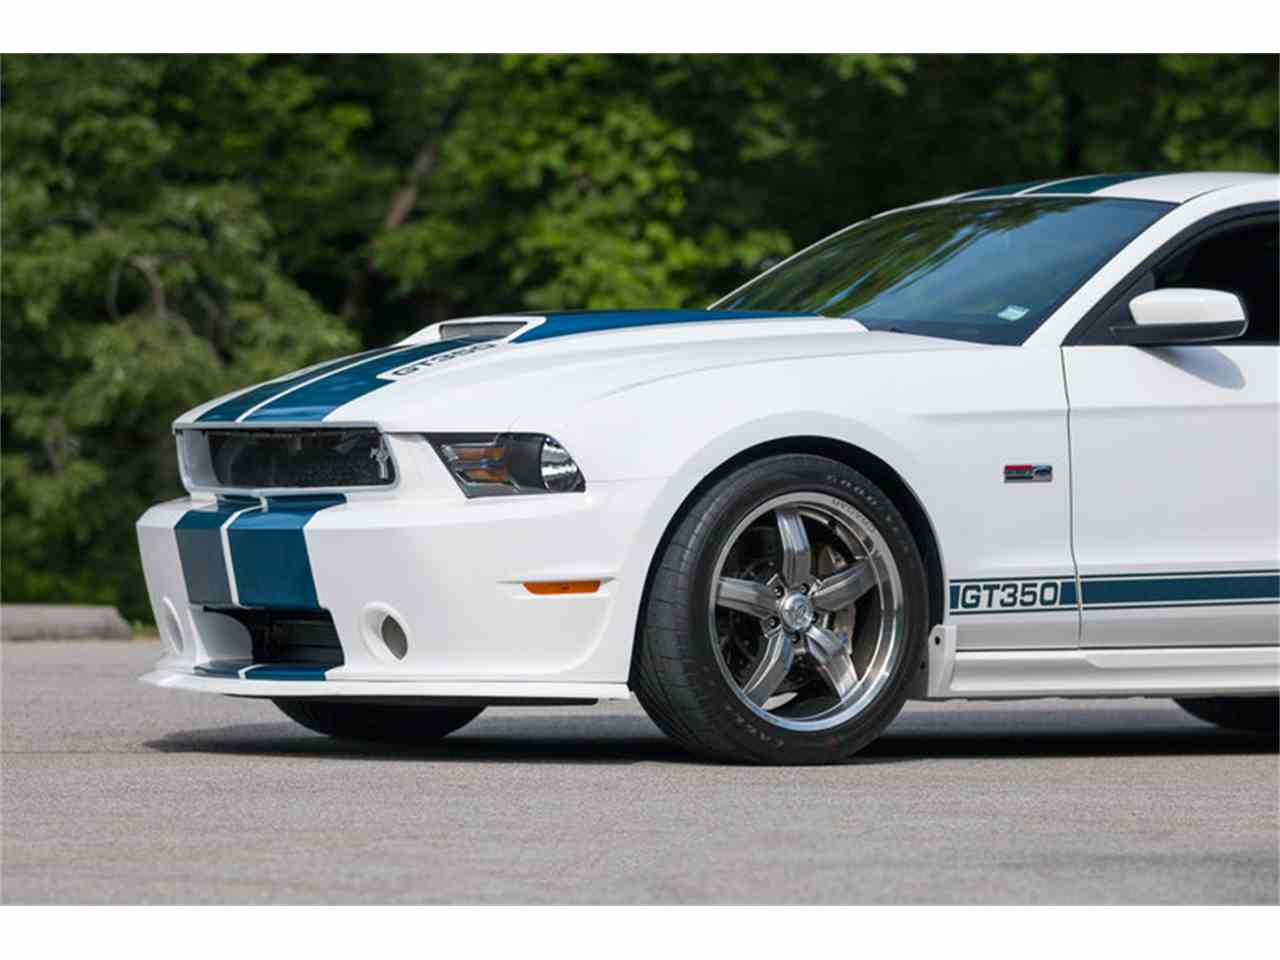 Large Picture of 2011 Ford Mustang GT350 located in Missouri - $89,995.00 - LCCC